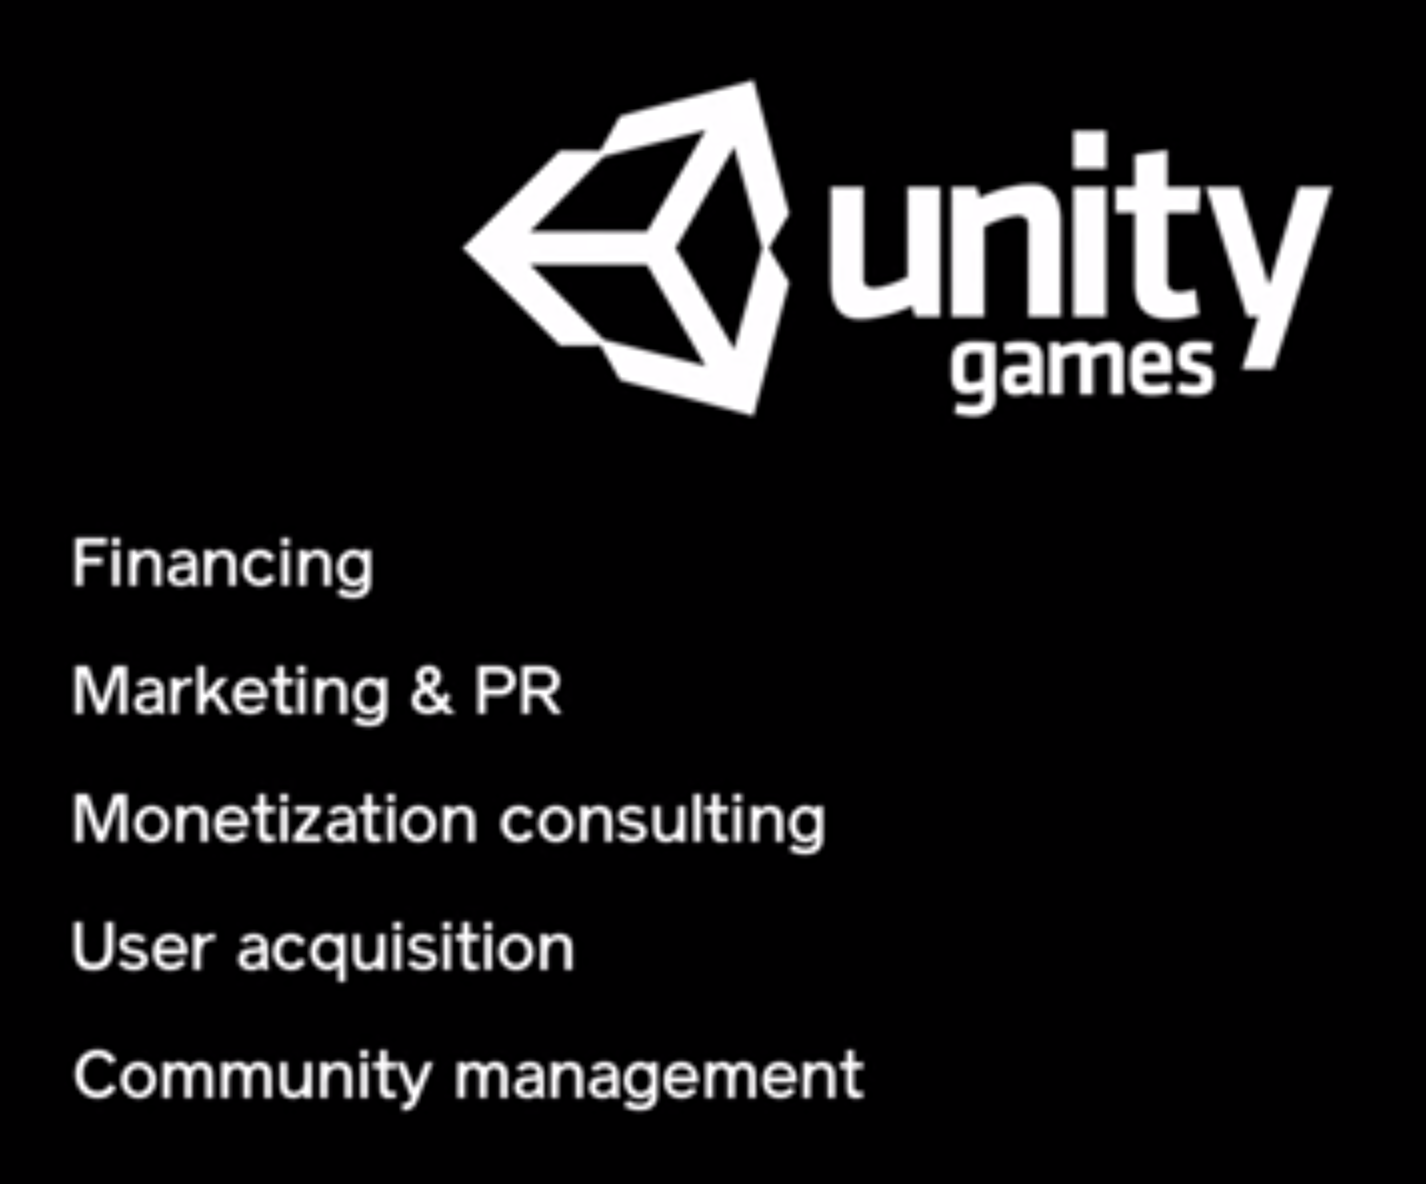 Unity Union To Promote Titles Unity Unity Games Finance